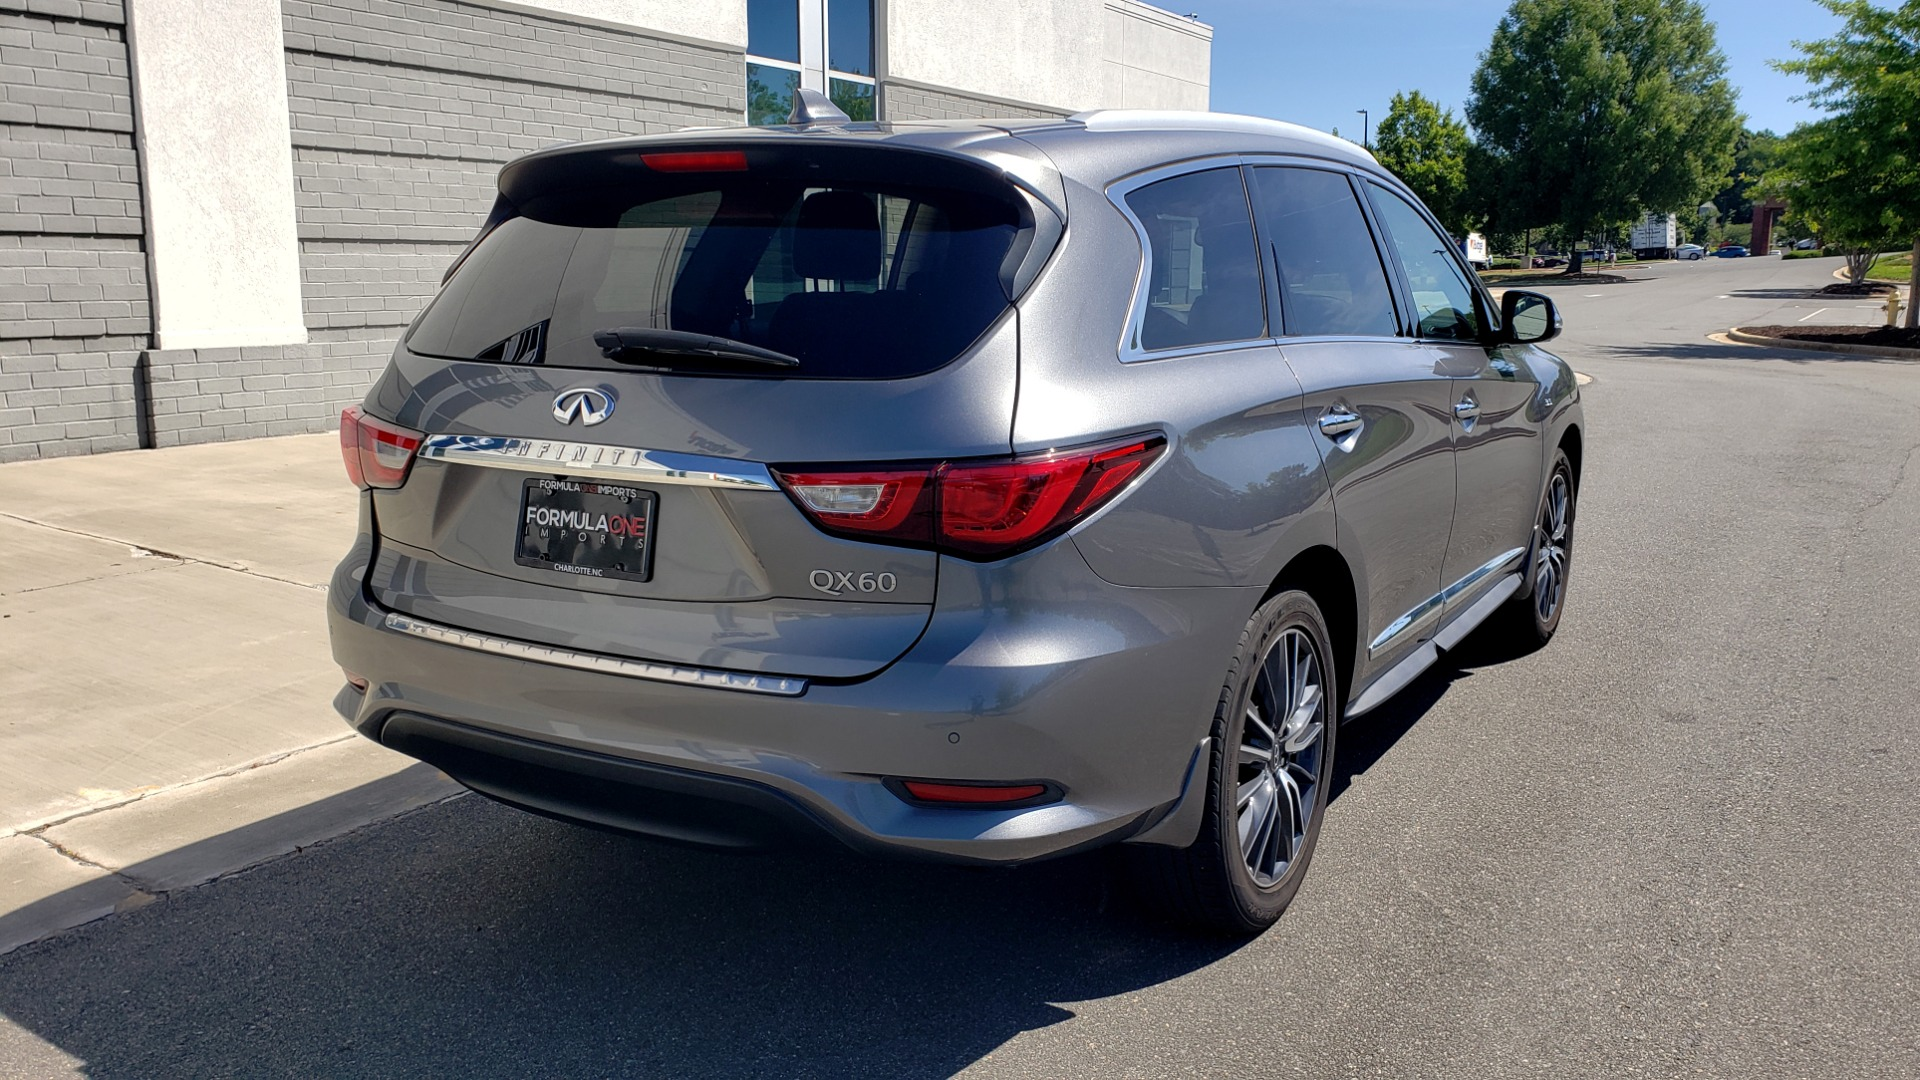 Used 2018 INFINITI QX60 3.5L V6 / FWD / CVT TRANS / NAV / SUNROOF / 3-ROWS / REARVIEW for sale $31,999 at Formula Imports in Charlotte NC 28227 2